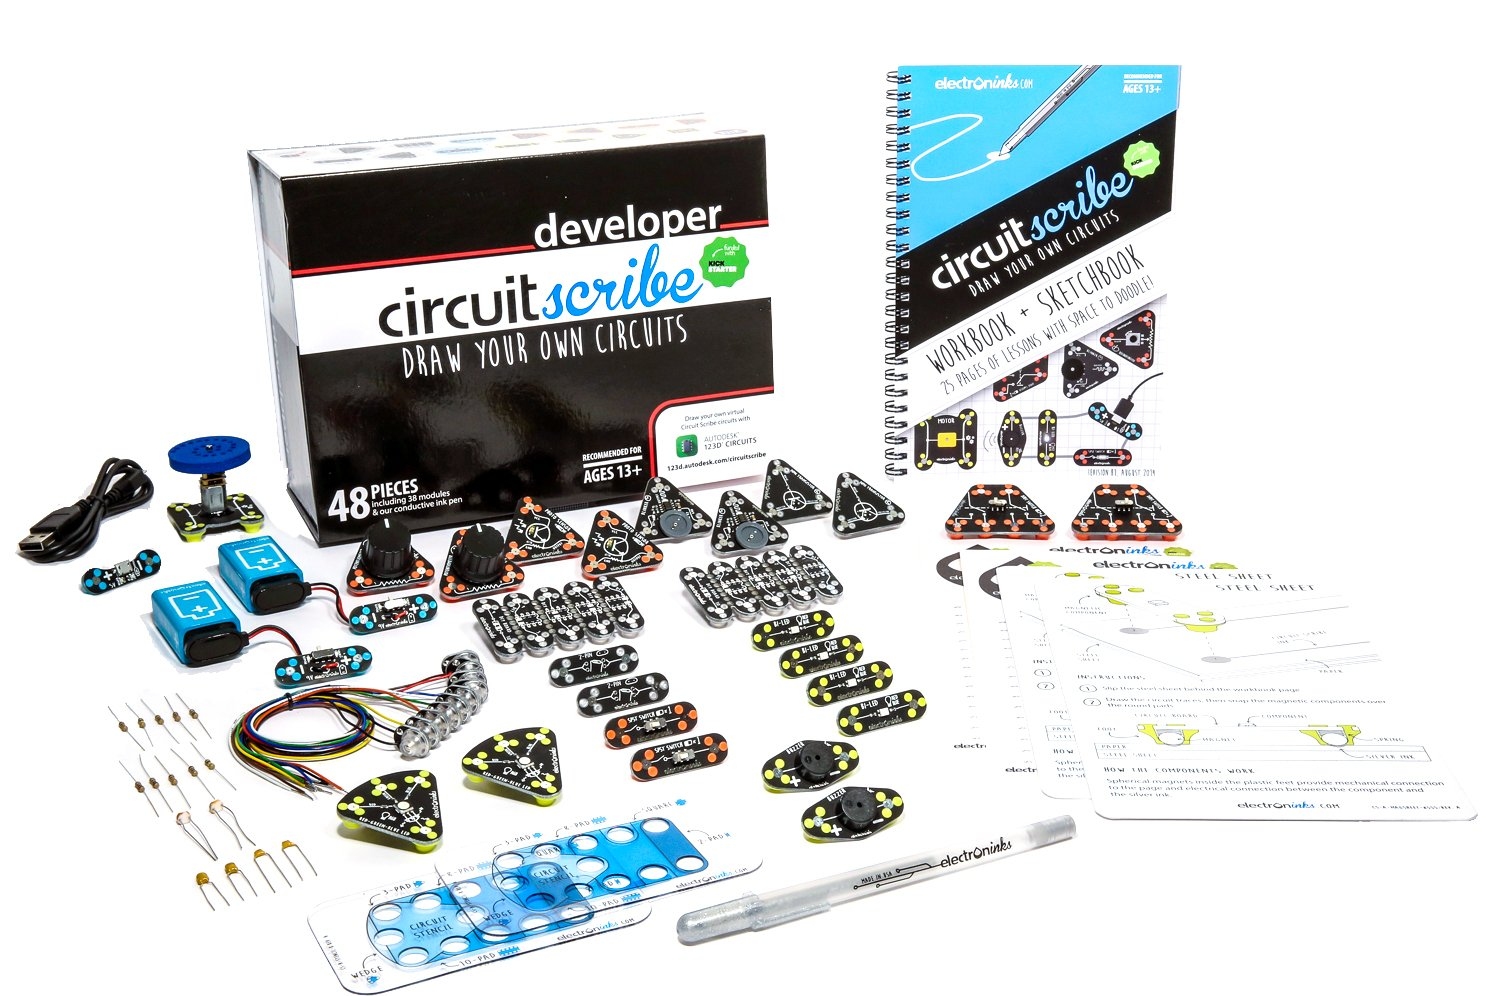 Buy Circuit Scribe Developer Kit Draw Circuits Instantly Online At Kickstarter Low Prices In India